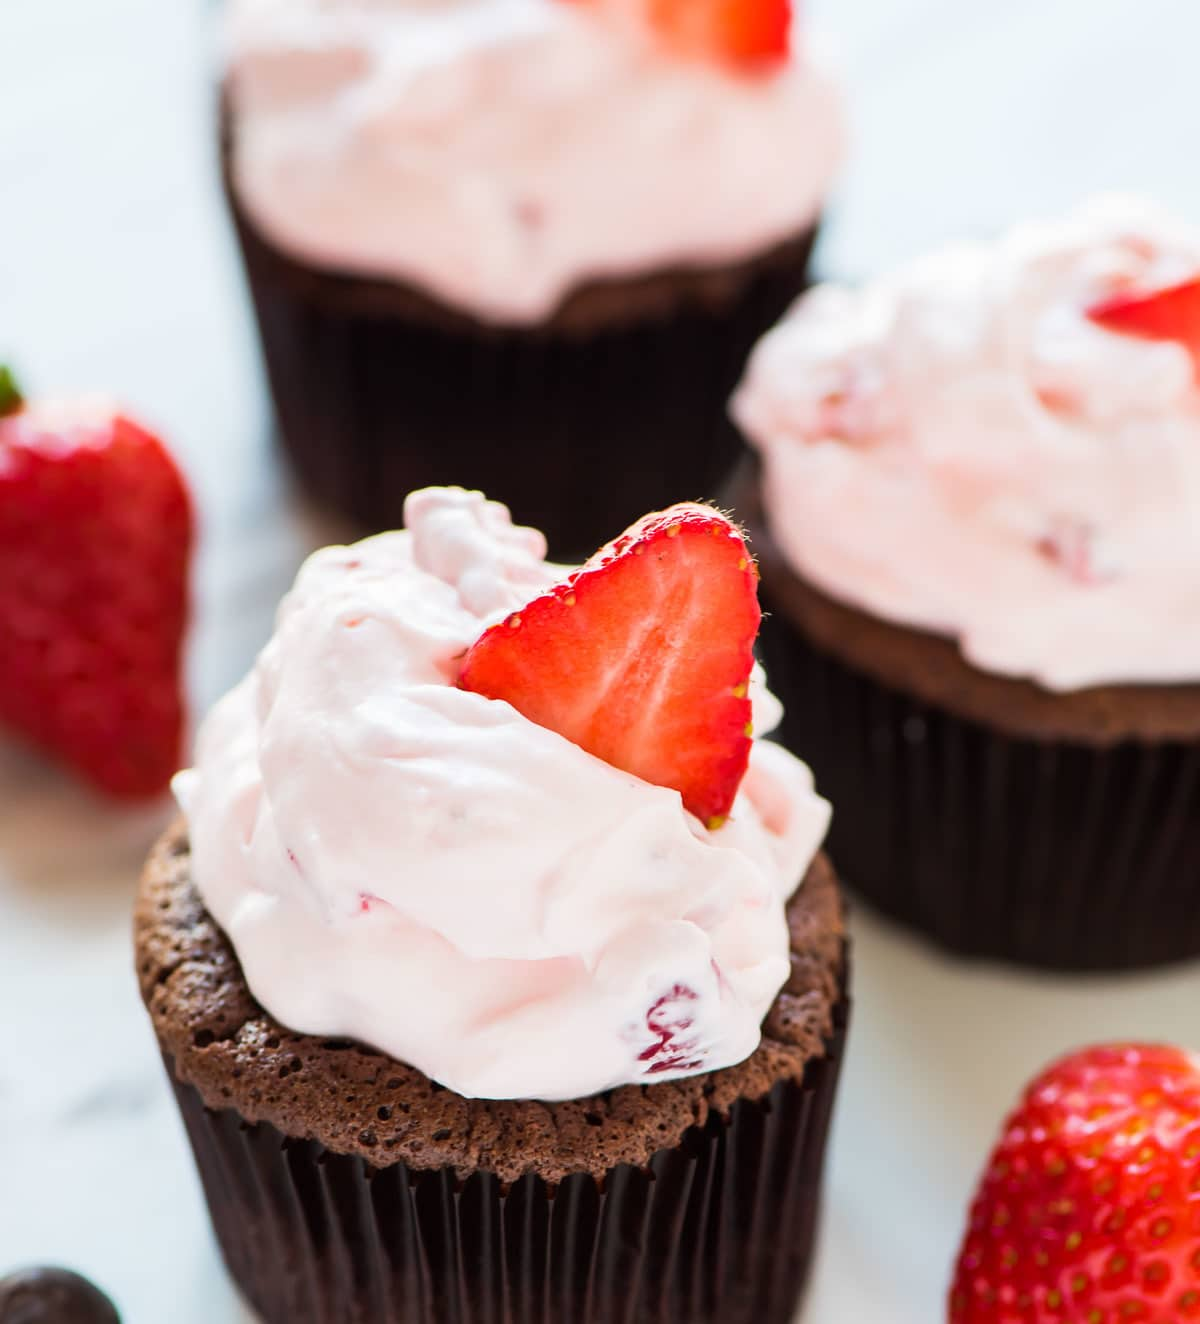 Chocolate Mousse Cupcakes. Rich, silky, chocolate cupcakes, topped with fluffy Strawberry Cream Cheese Frosting. TO DIE FOR! Recipe at wellplated.com   @wellplated